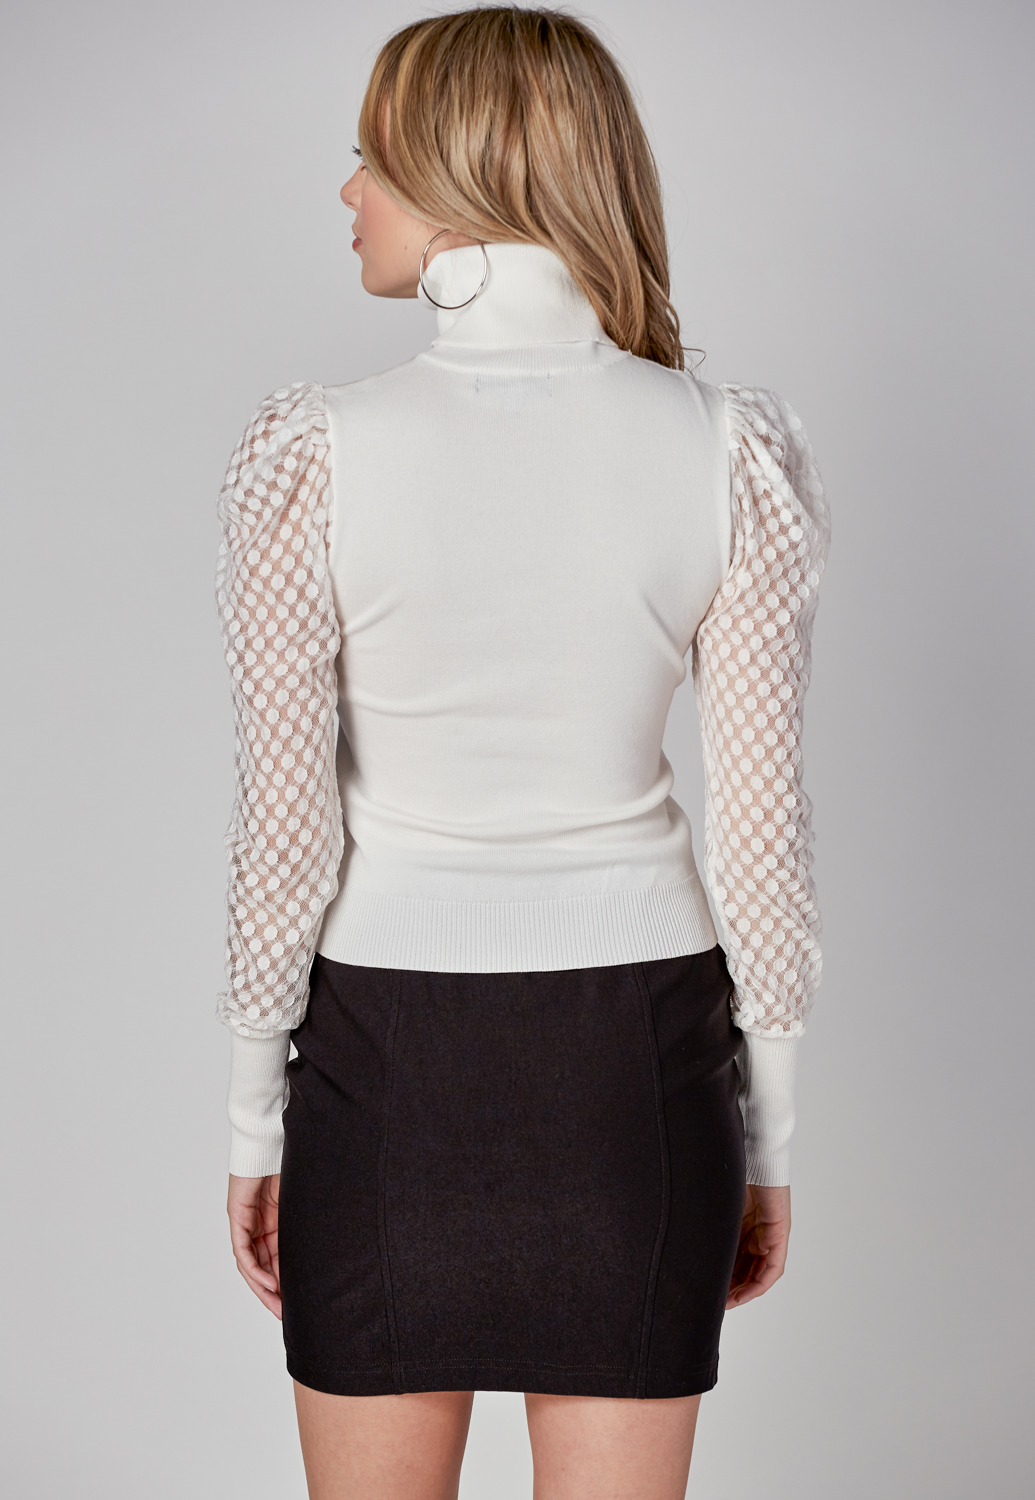 Turtleneck Puff Mesh Long Sleeve Knitted Top